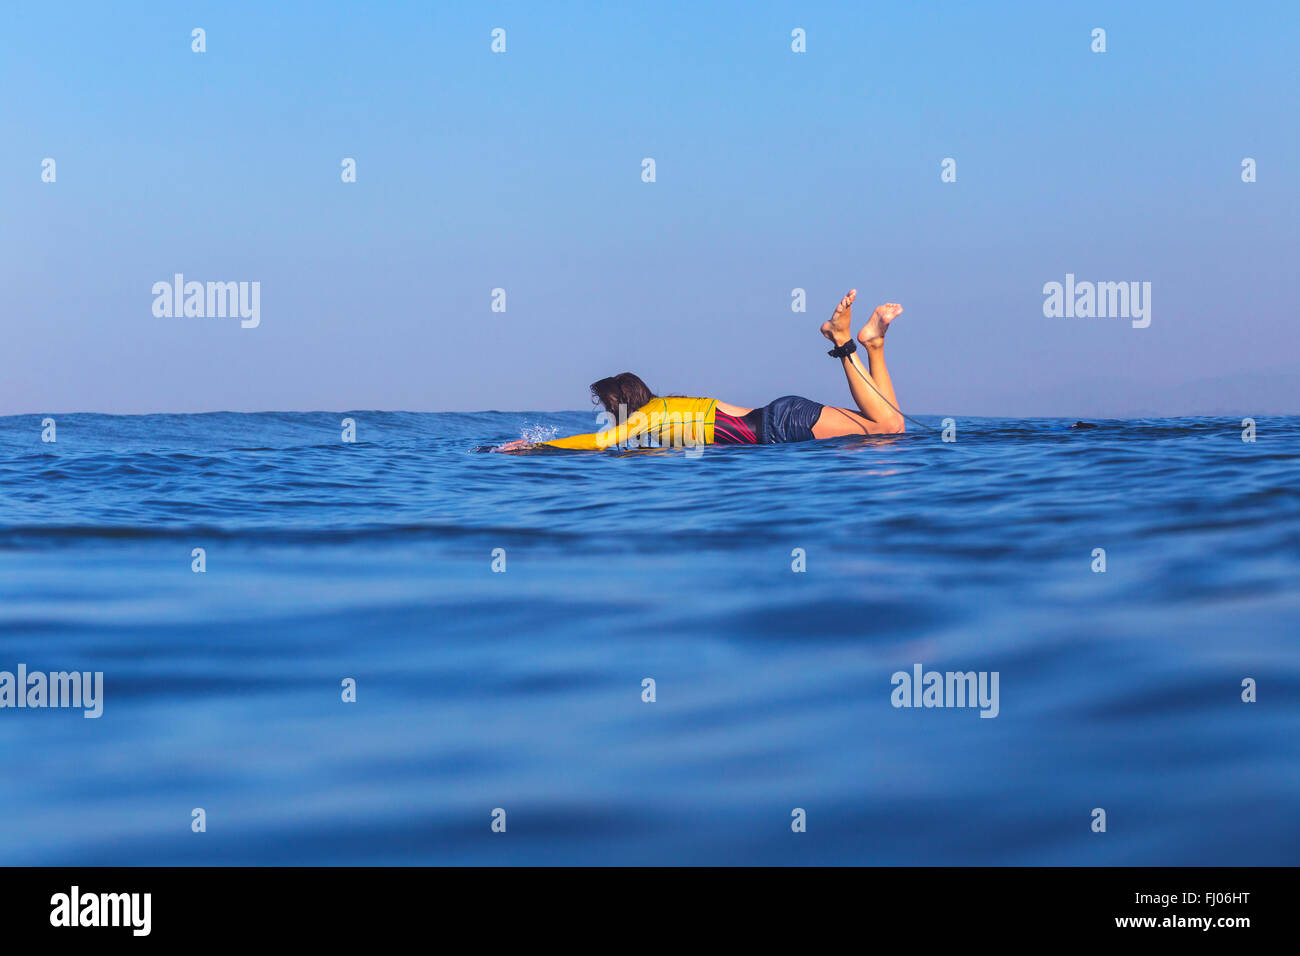 Indonesia, Bali, woman lying on her surfboard floating in the water - Stock Image